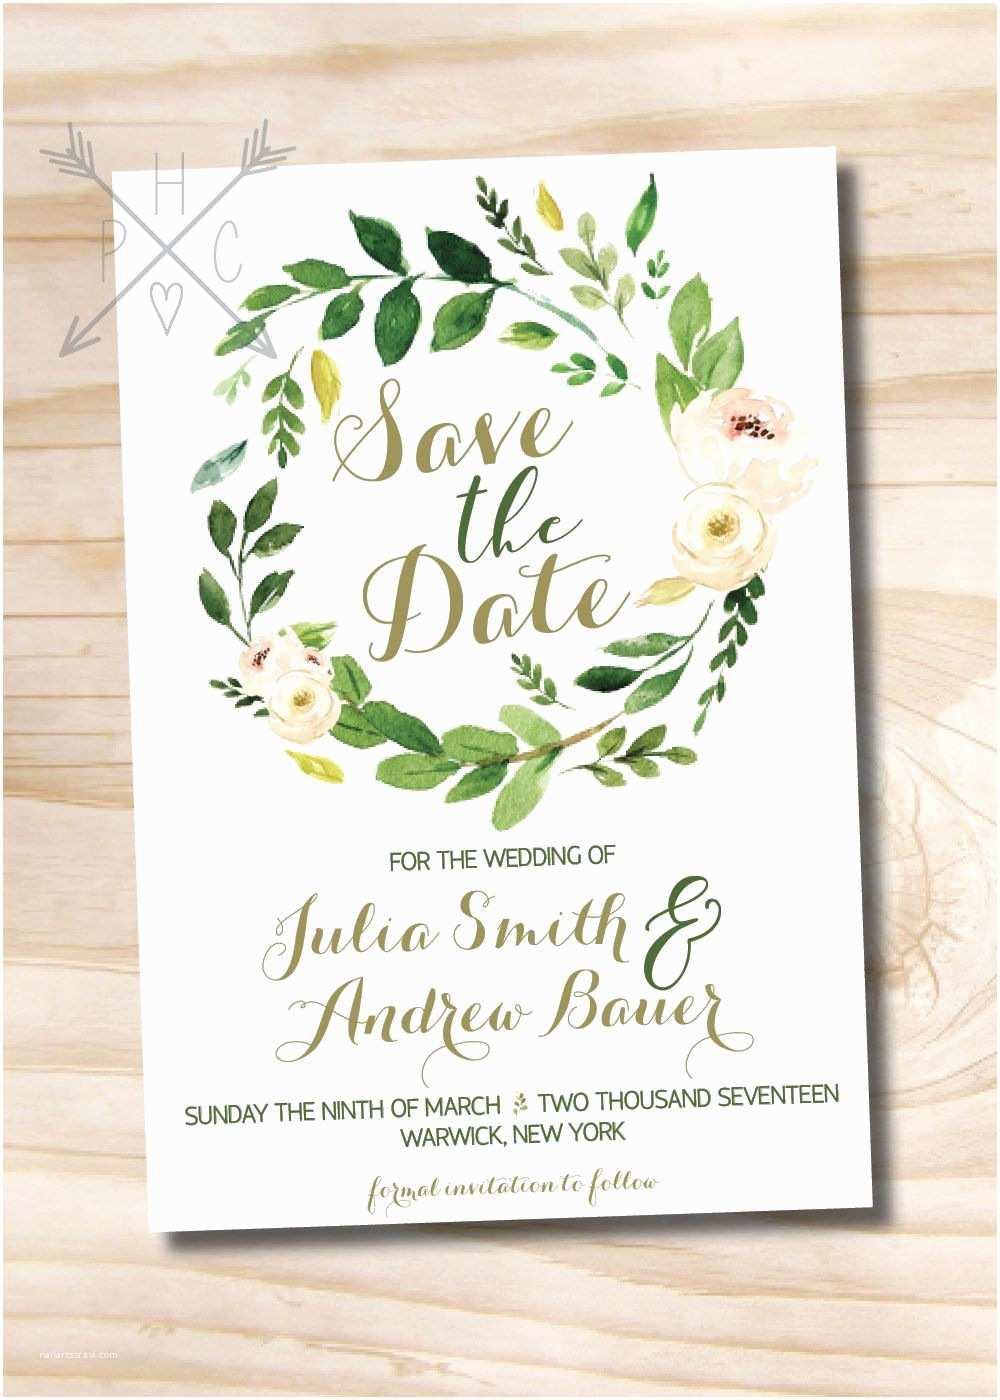 Watercolor Floral Wedding Invitations Watercolor Floral Wreath Wedding Save the Date Foliage